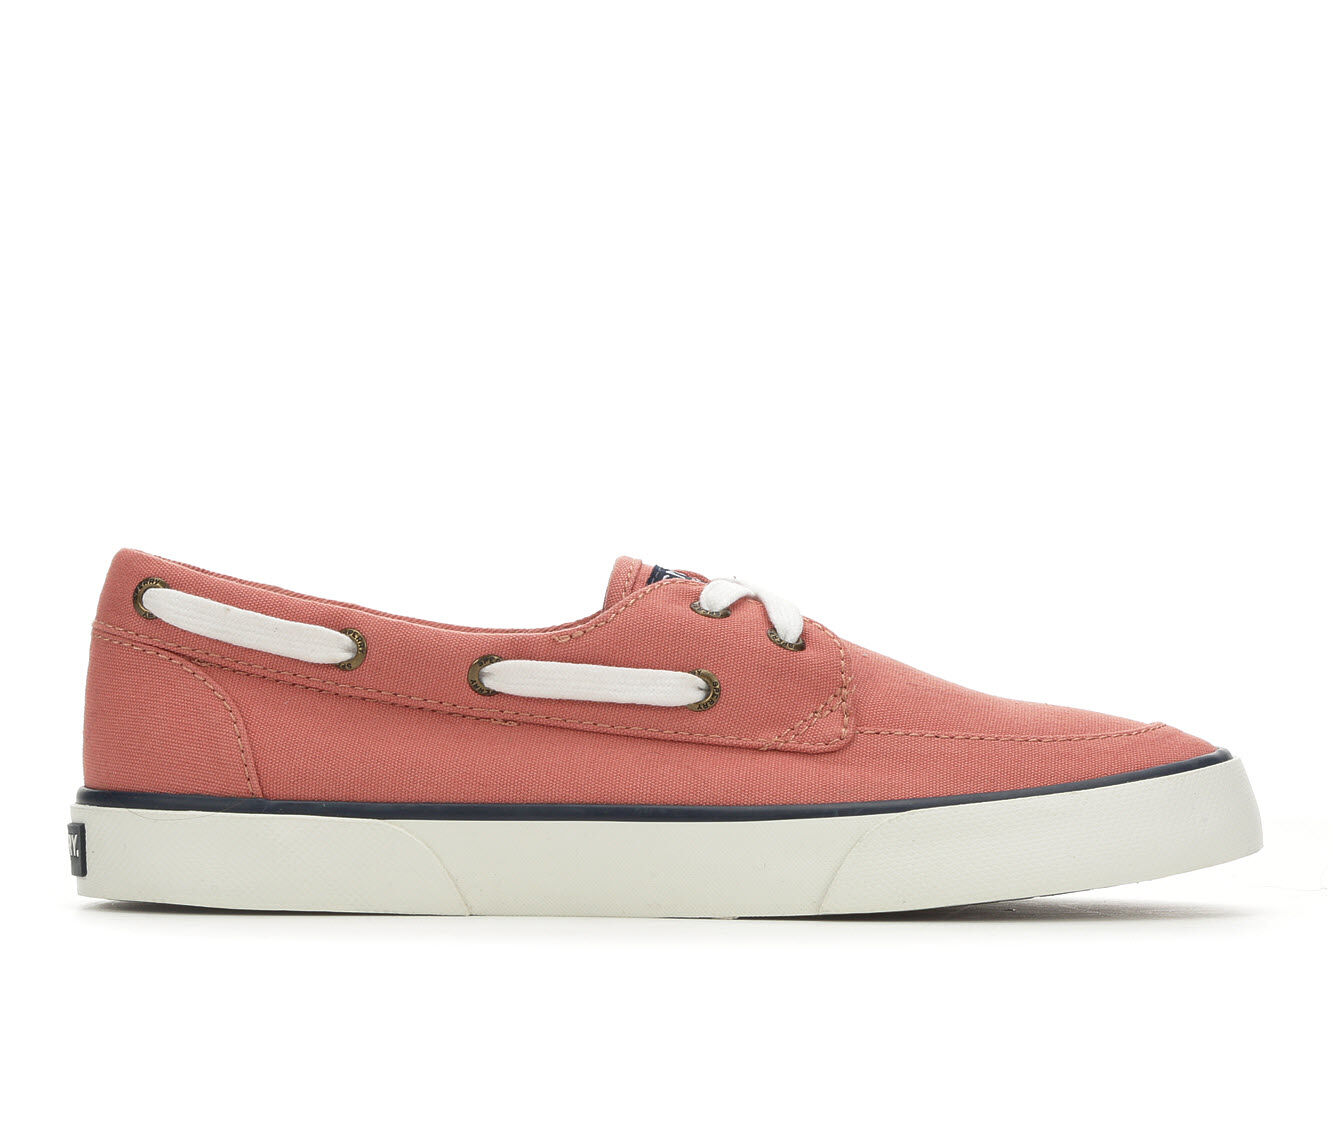 new fashion Women's Sperry Pier Boat Shoes Nantucket Red